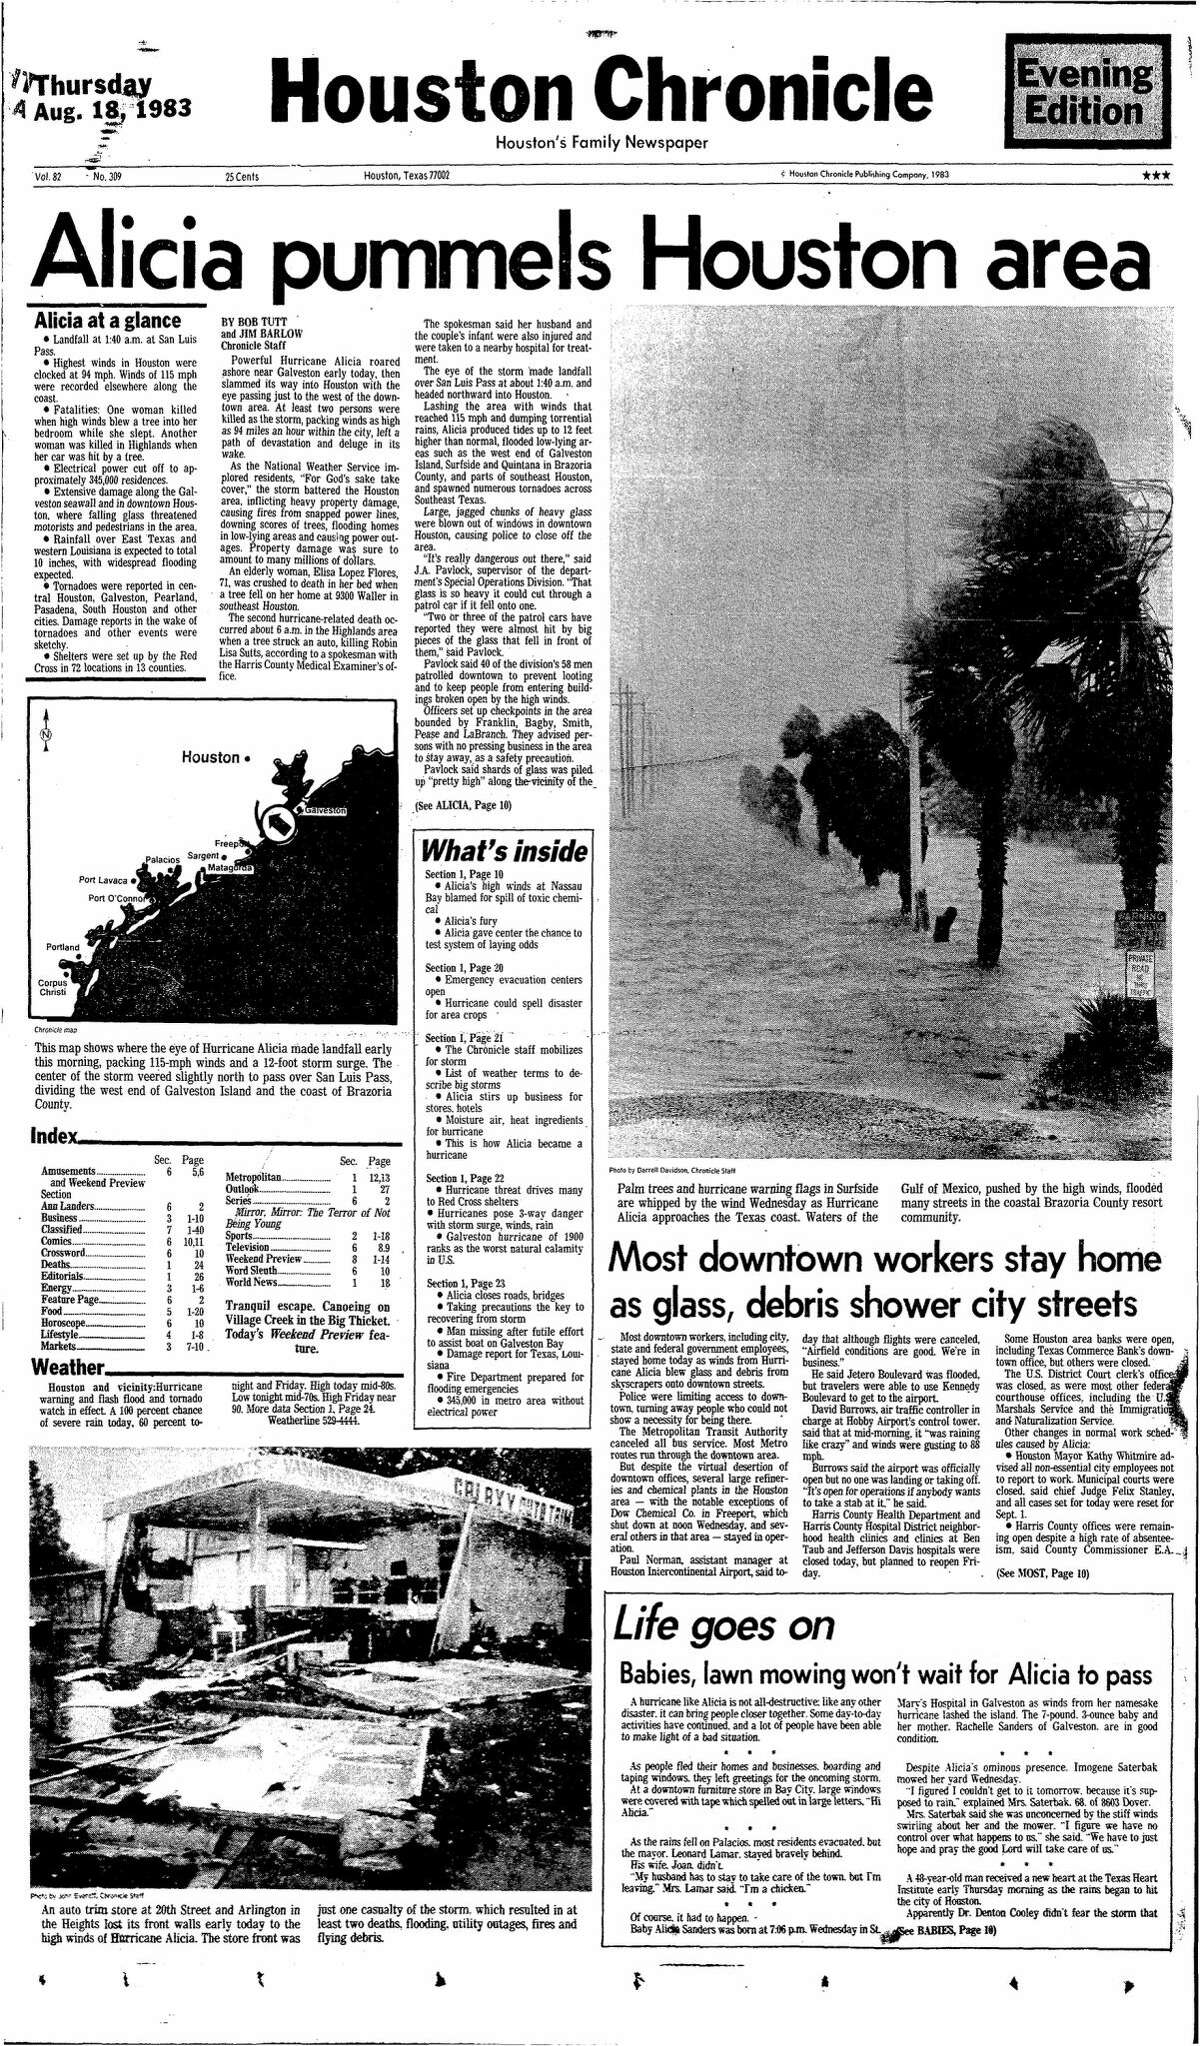 Houston Chronicle front page from Aug. 18, 1983.